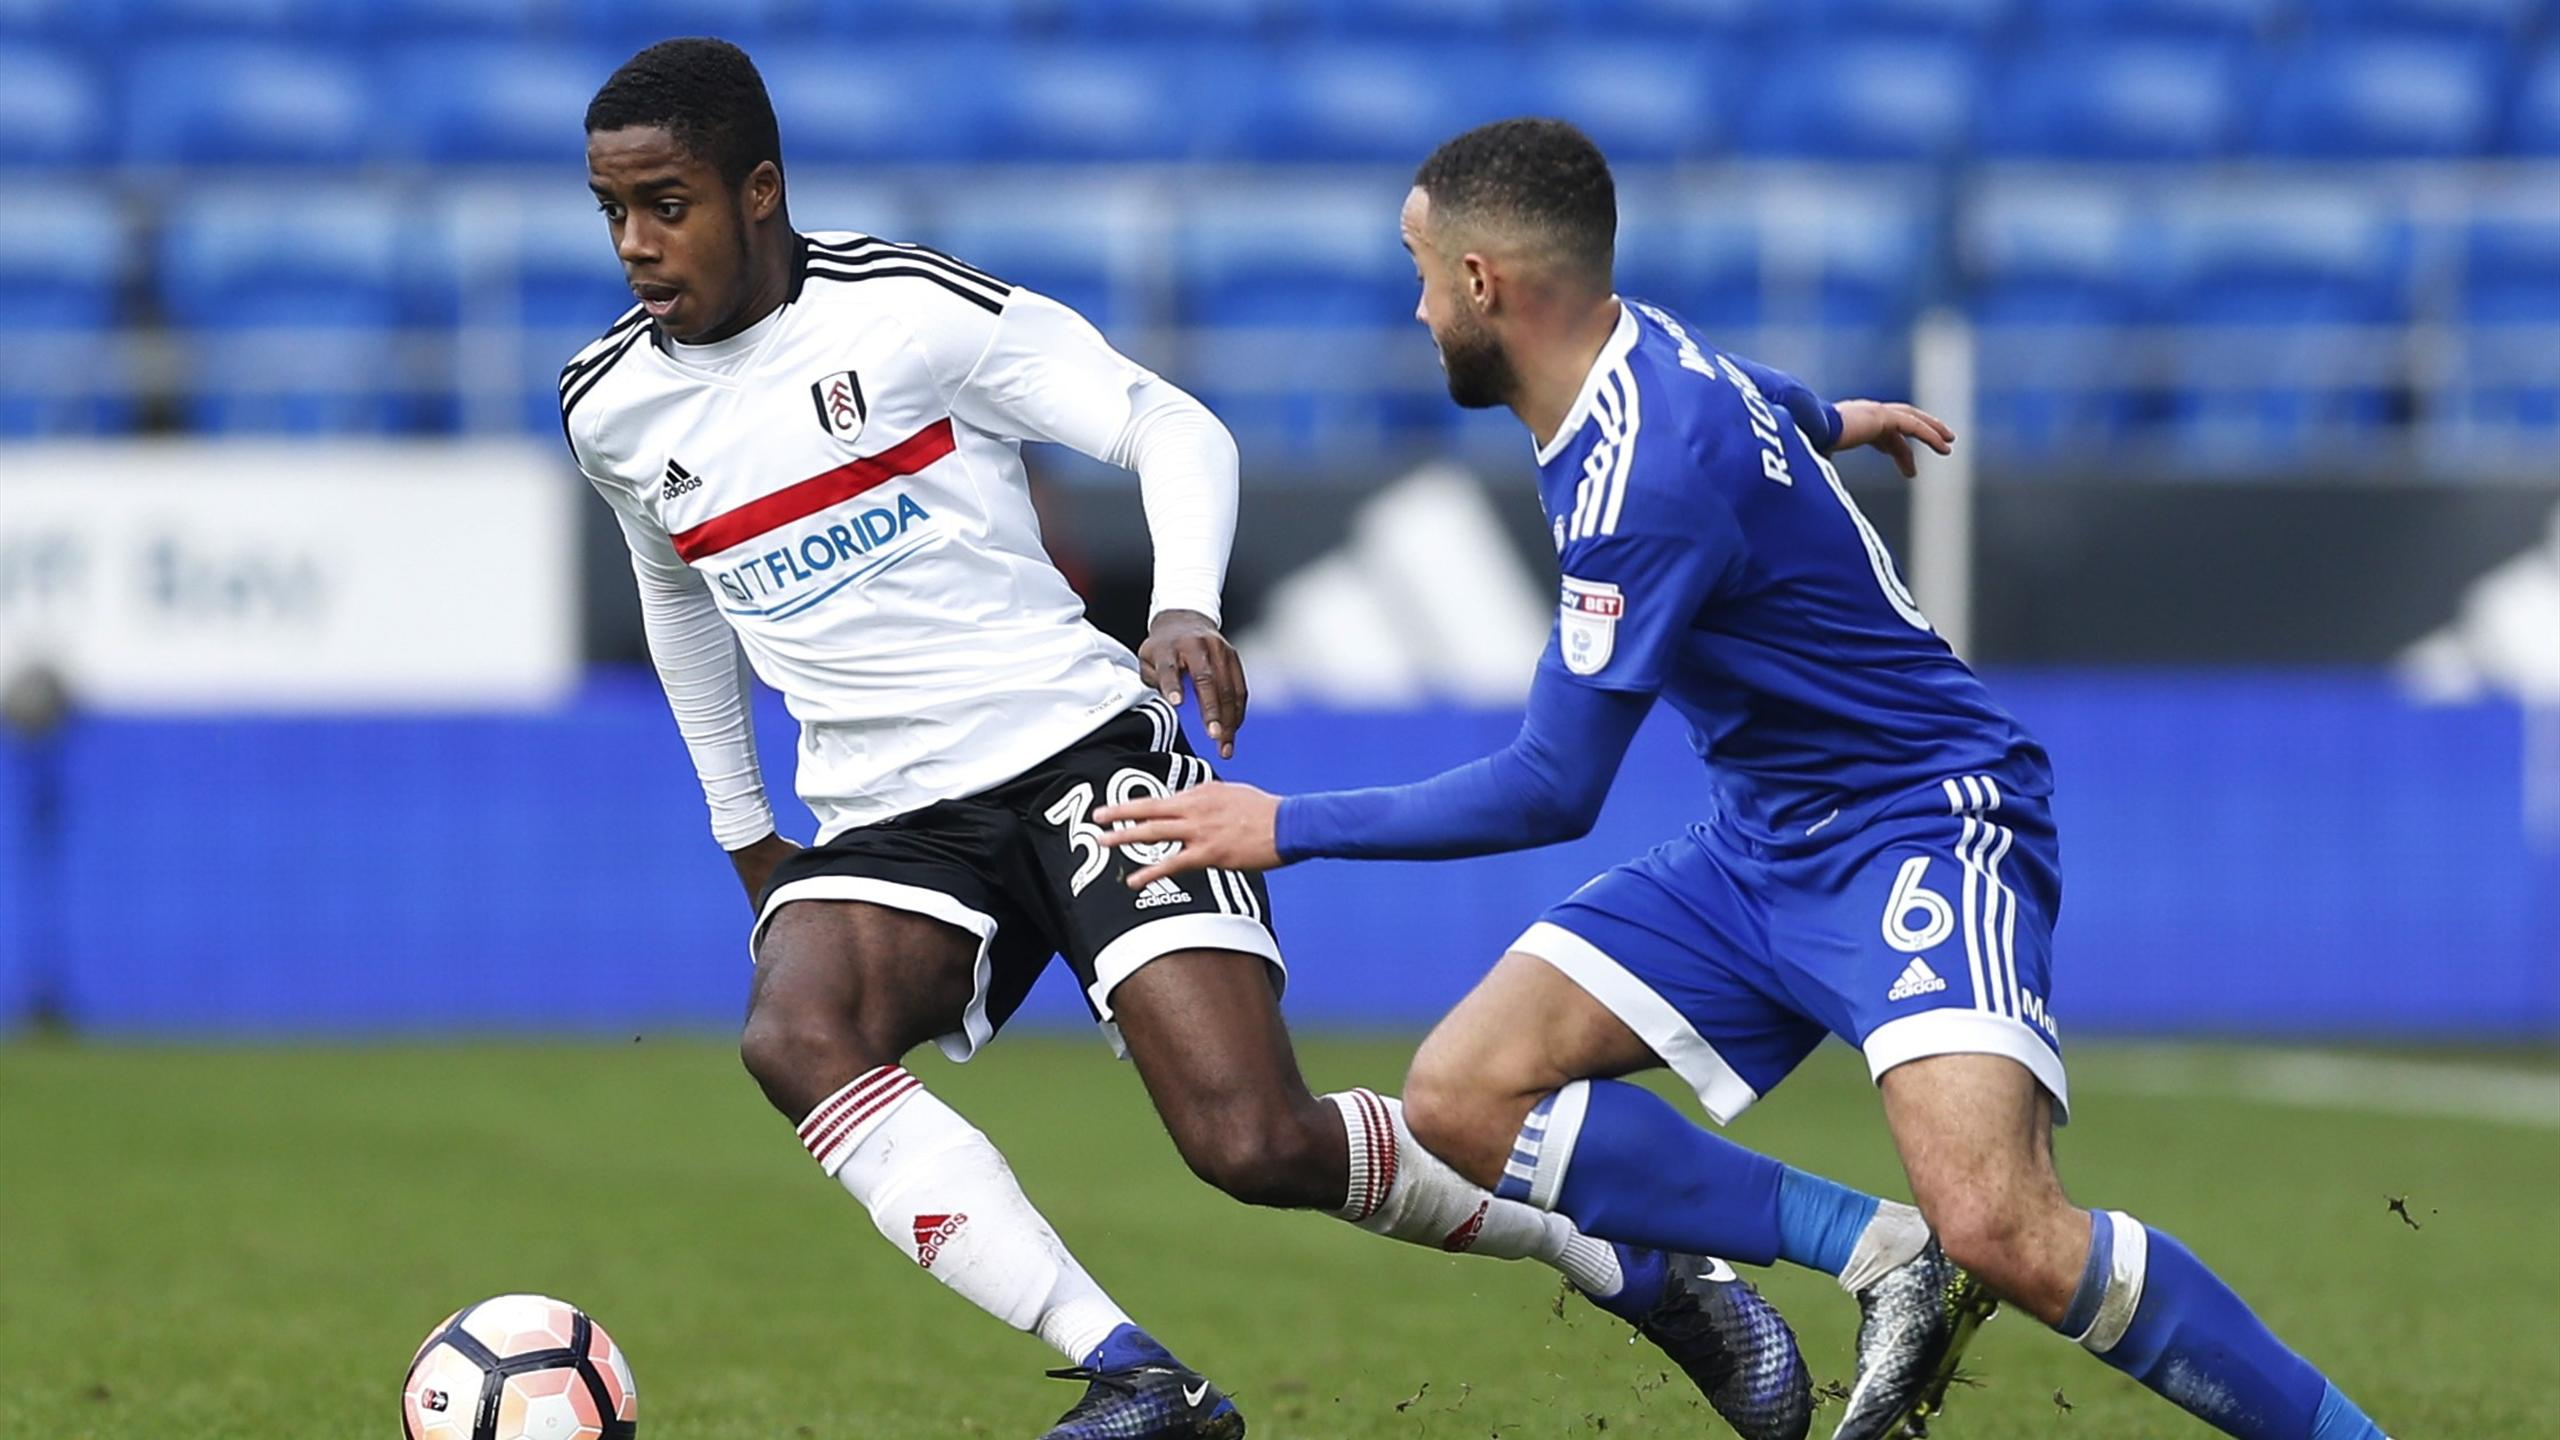 Cardiff City's Jazz Richards and Fulham's Ryan Sessegnon in action